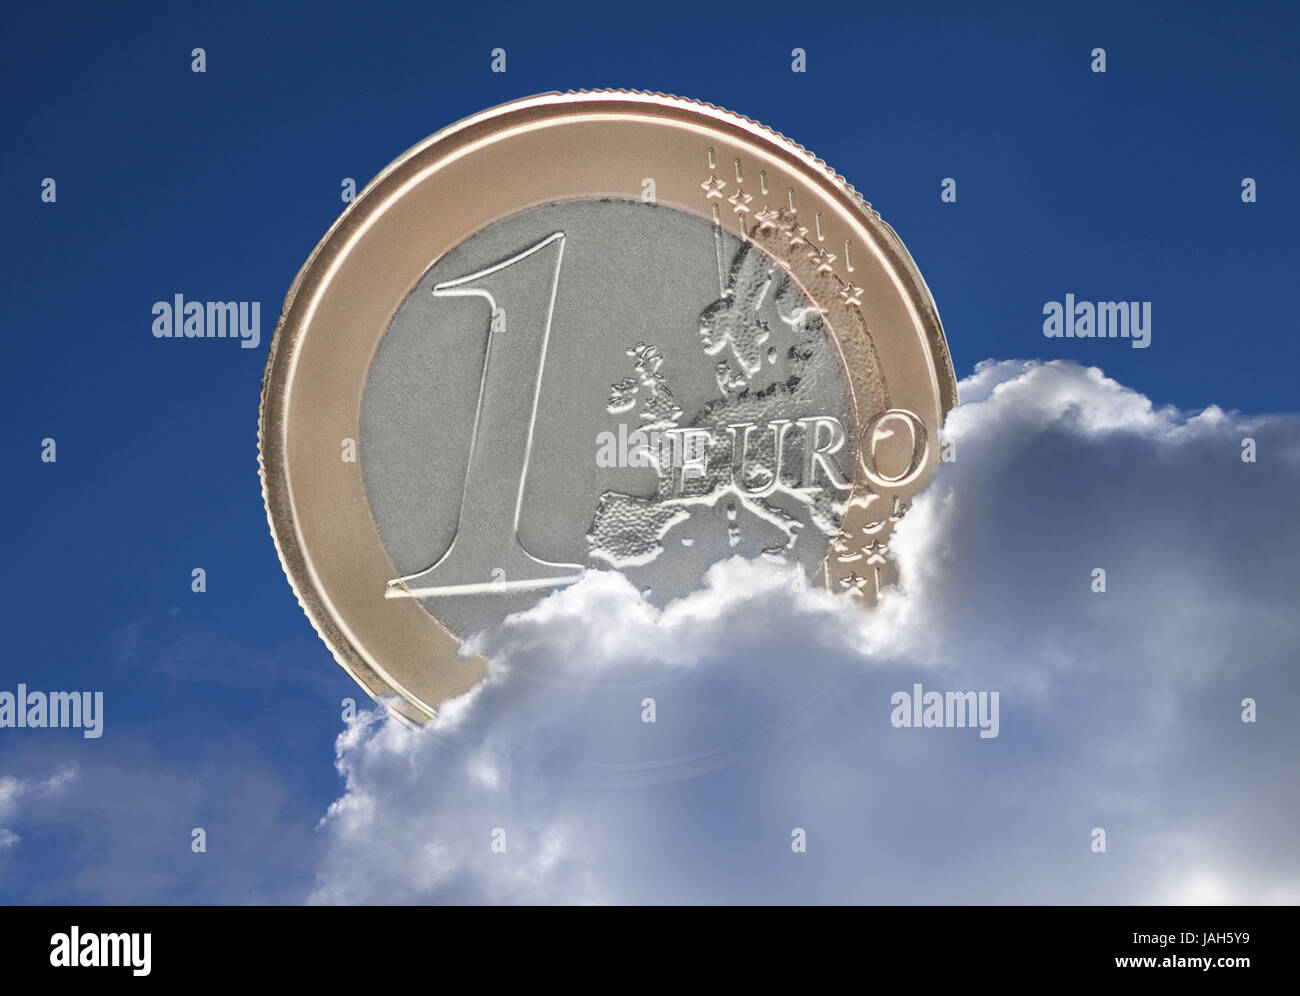 Heaven,1 euro of coin,clouds,euro,€,euro coin,monetary coin,money,coin,the EU,Europe,cloudy,eurocrisis,inflation,sky,blue,currency - Stock Image